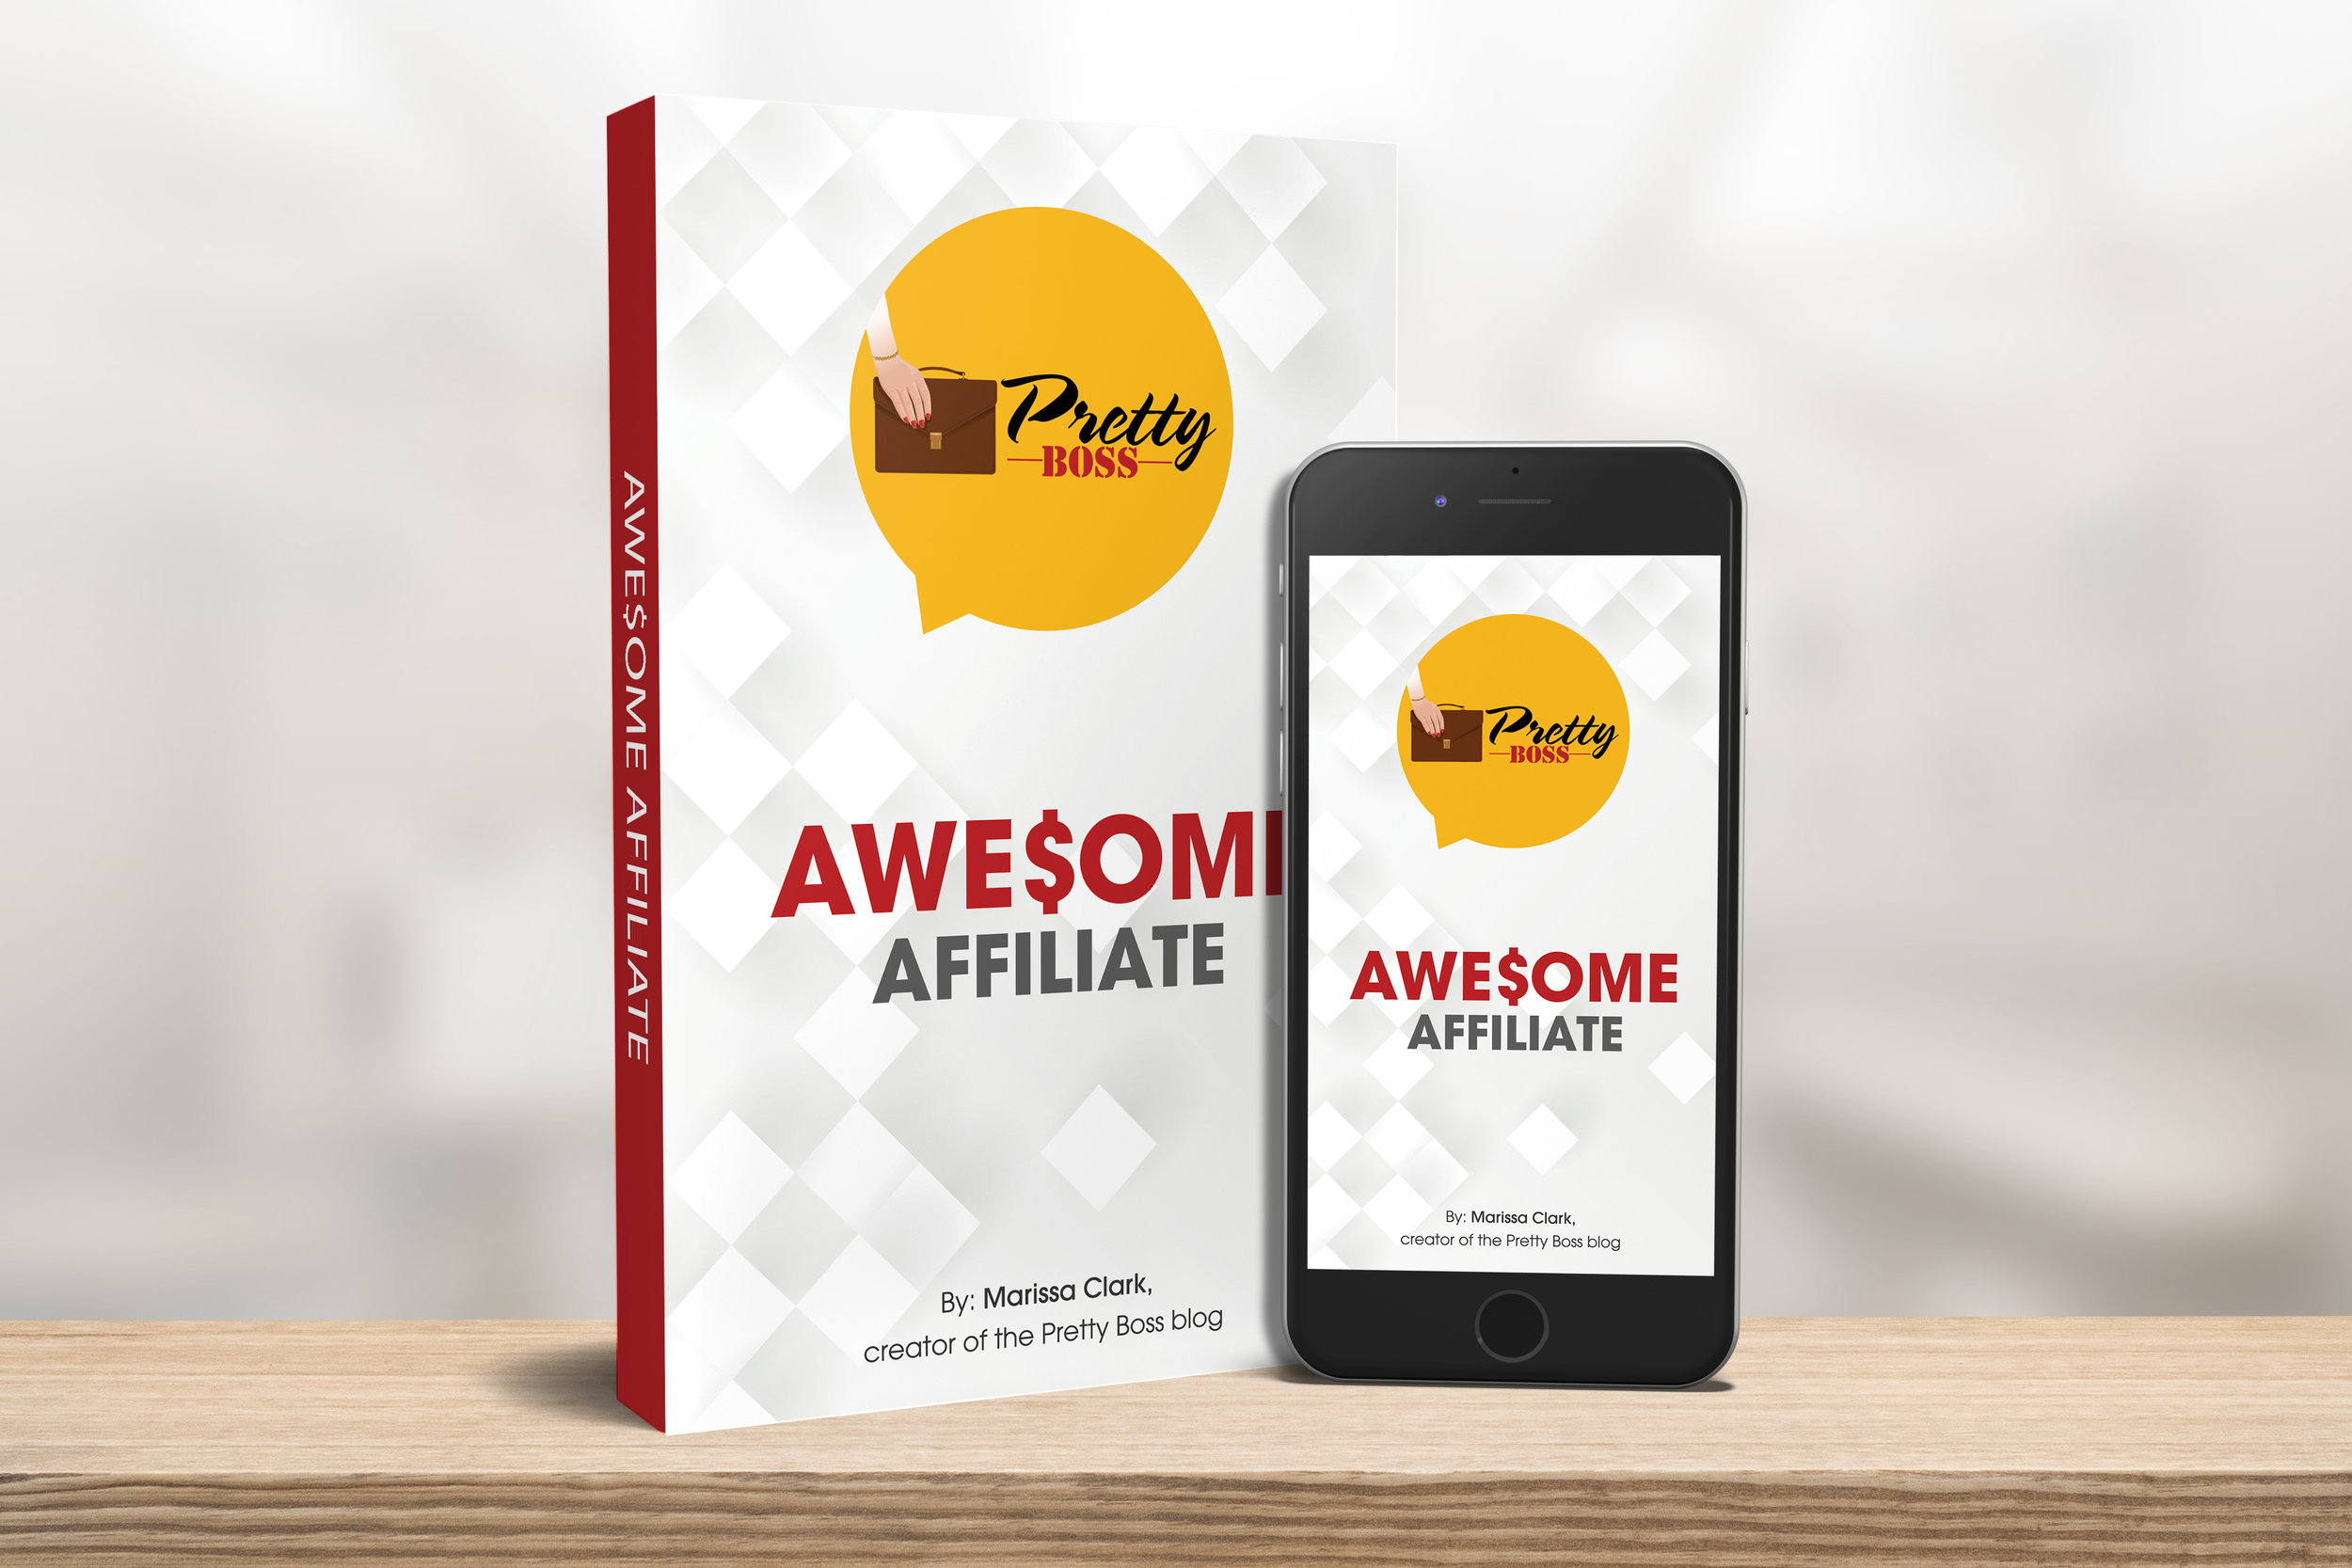 NOW AVAILABLE - Check out our NEW e-book 'Awe$ome Affiliate' to start making your own $ online!